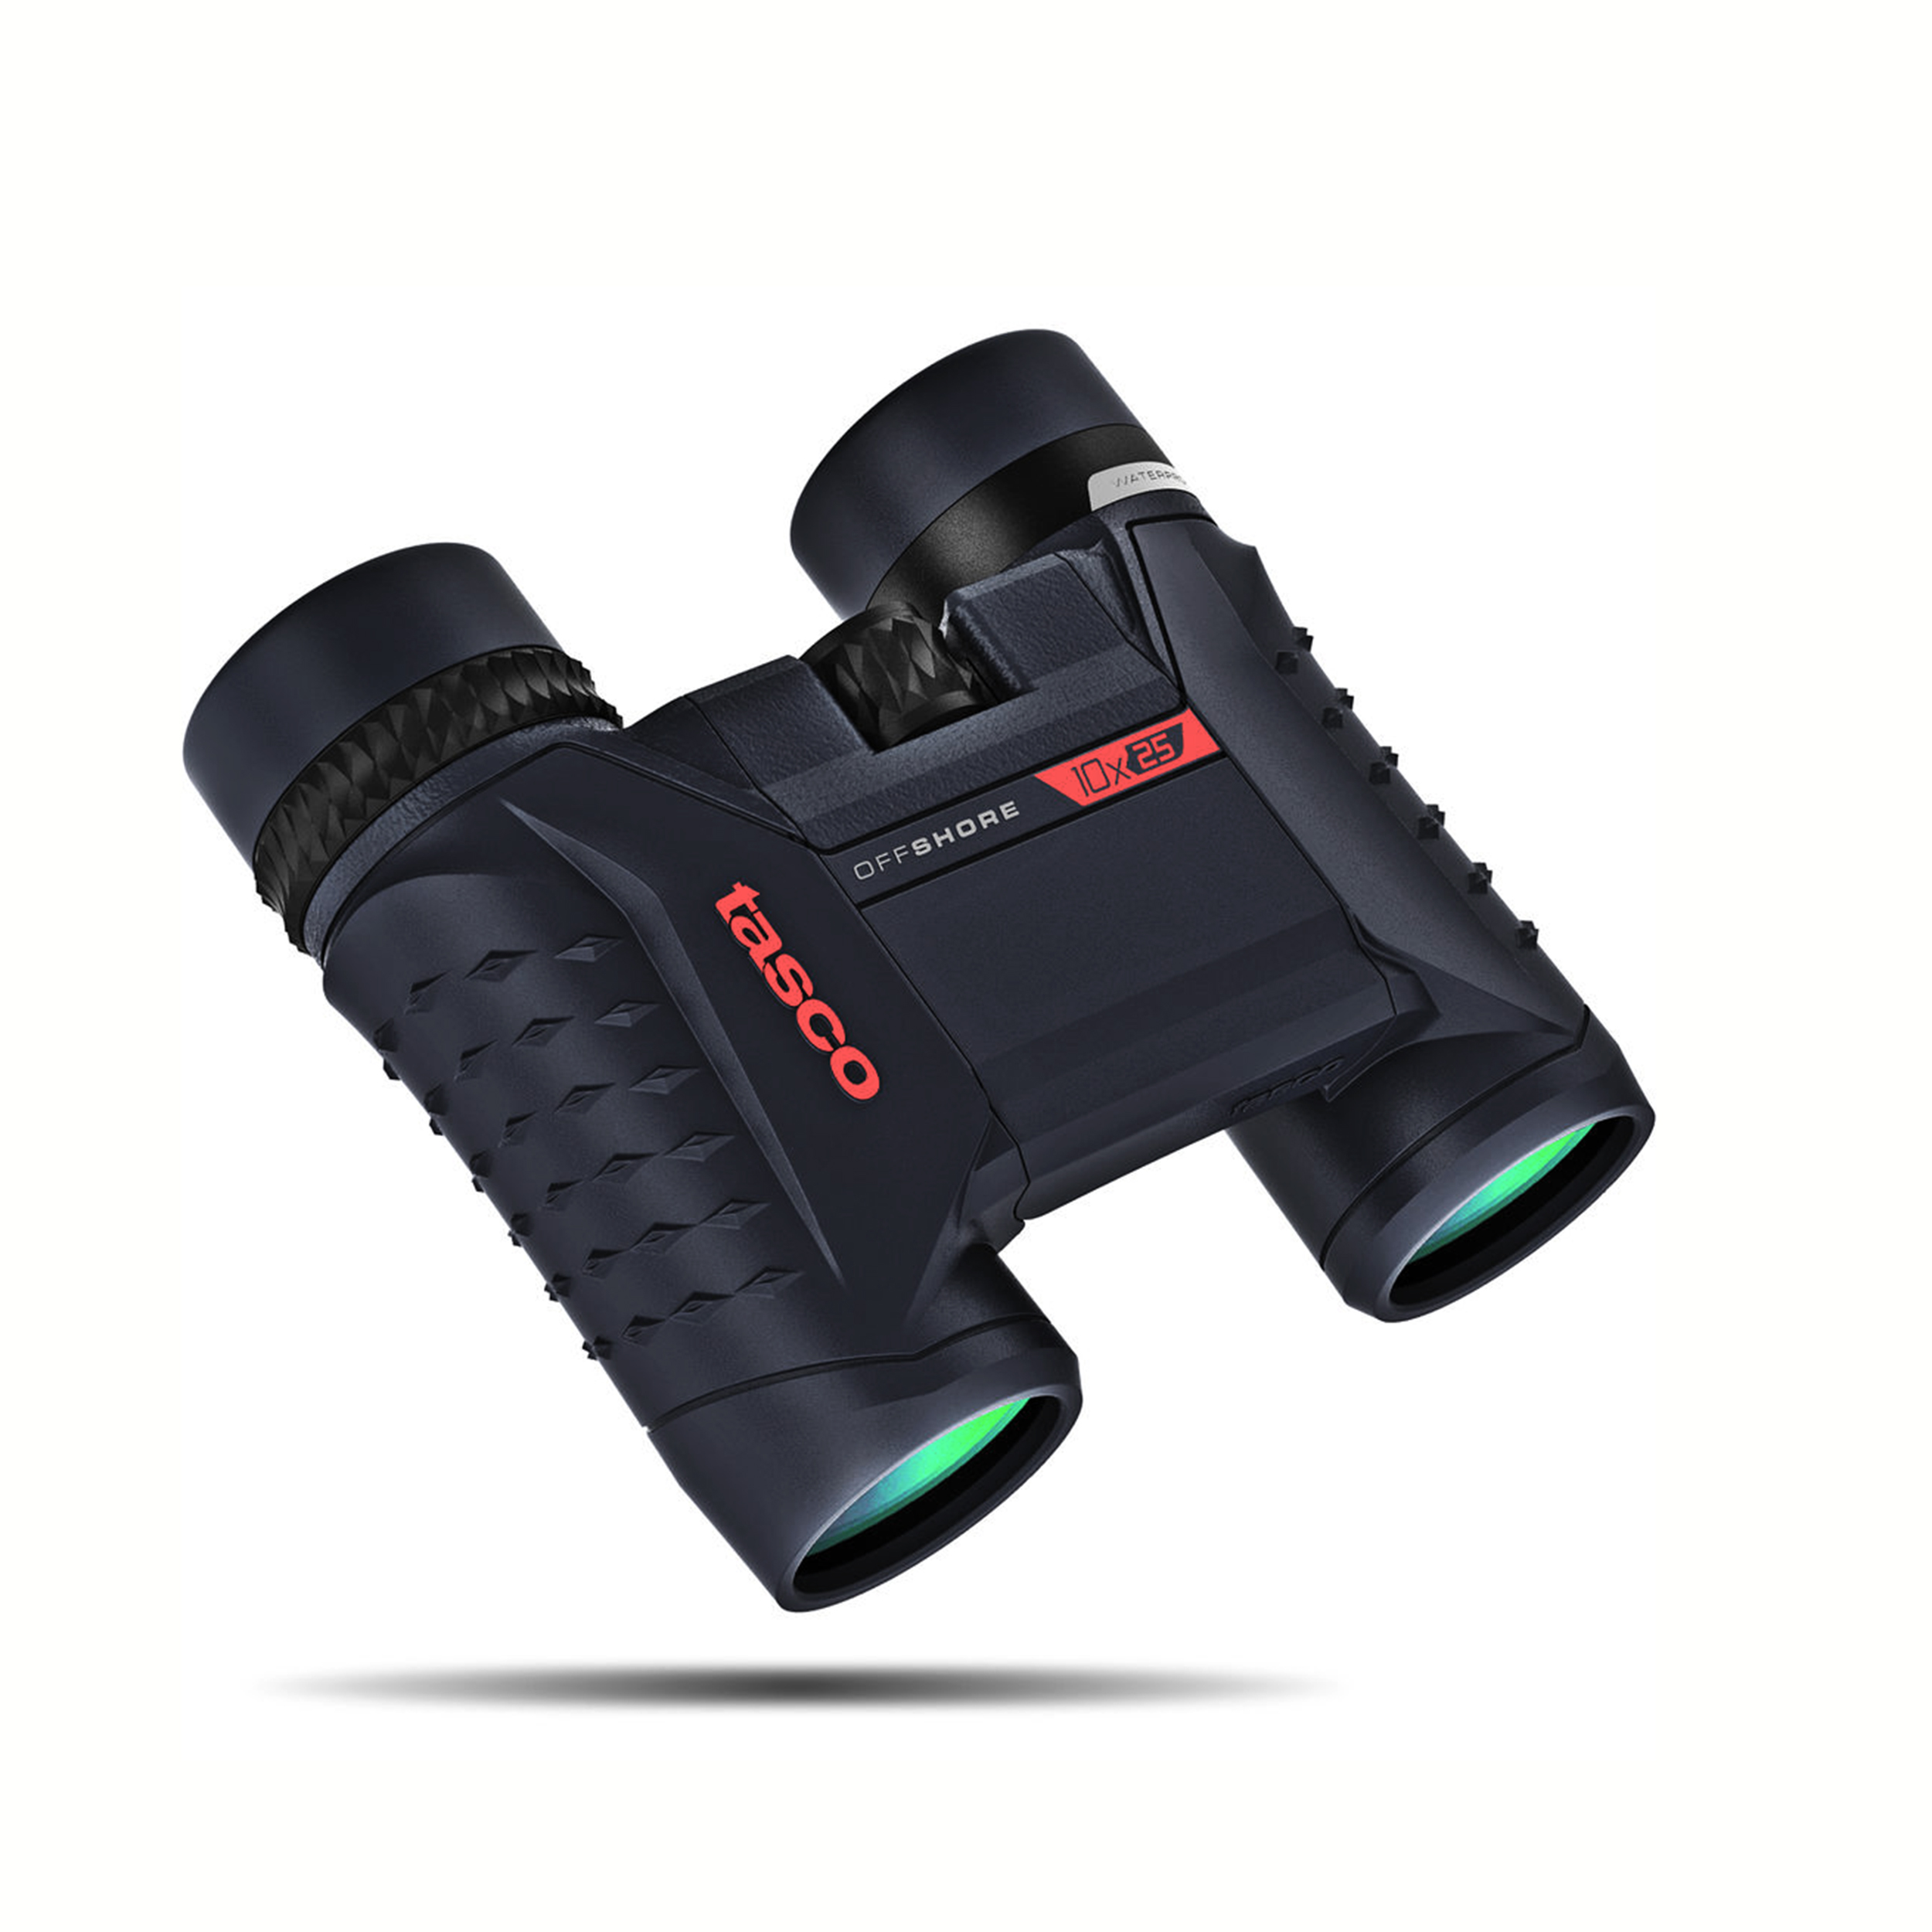 TASCO 10x25 Blue Roof 200125 Binocular Waterproof by Tasco